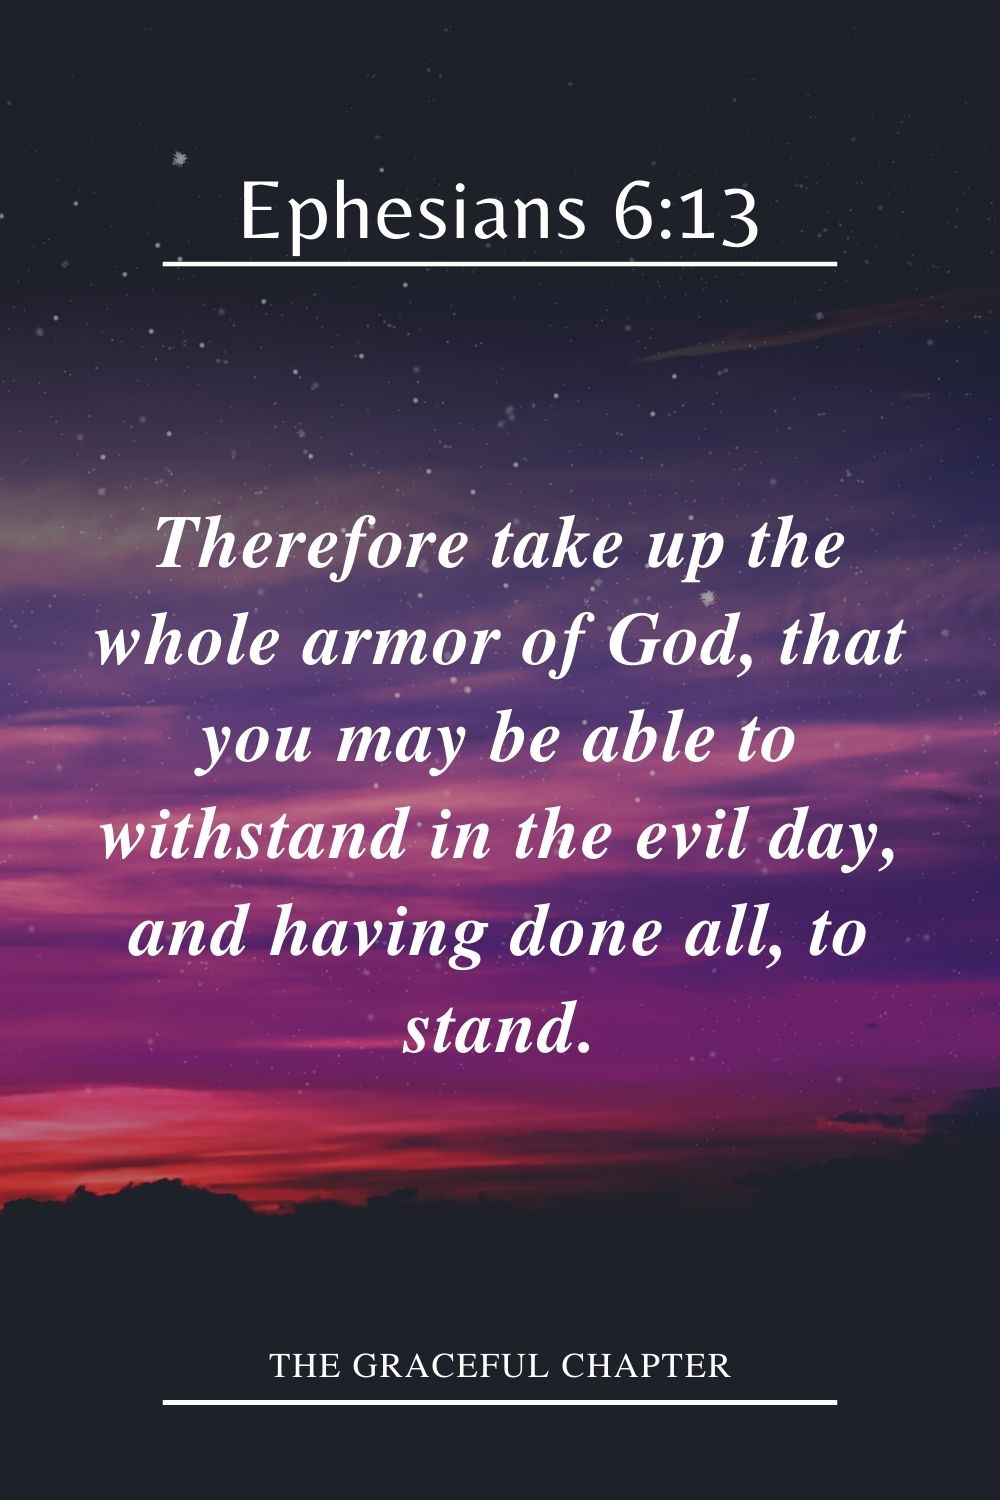 Therefore take up the whole armor of God, that you may be able to withstand in the evil day, and having done all, to stand. Ephesians 6:13